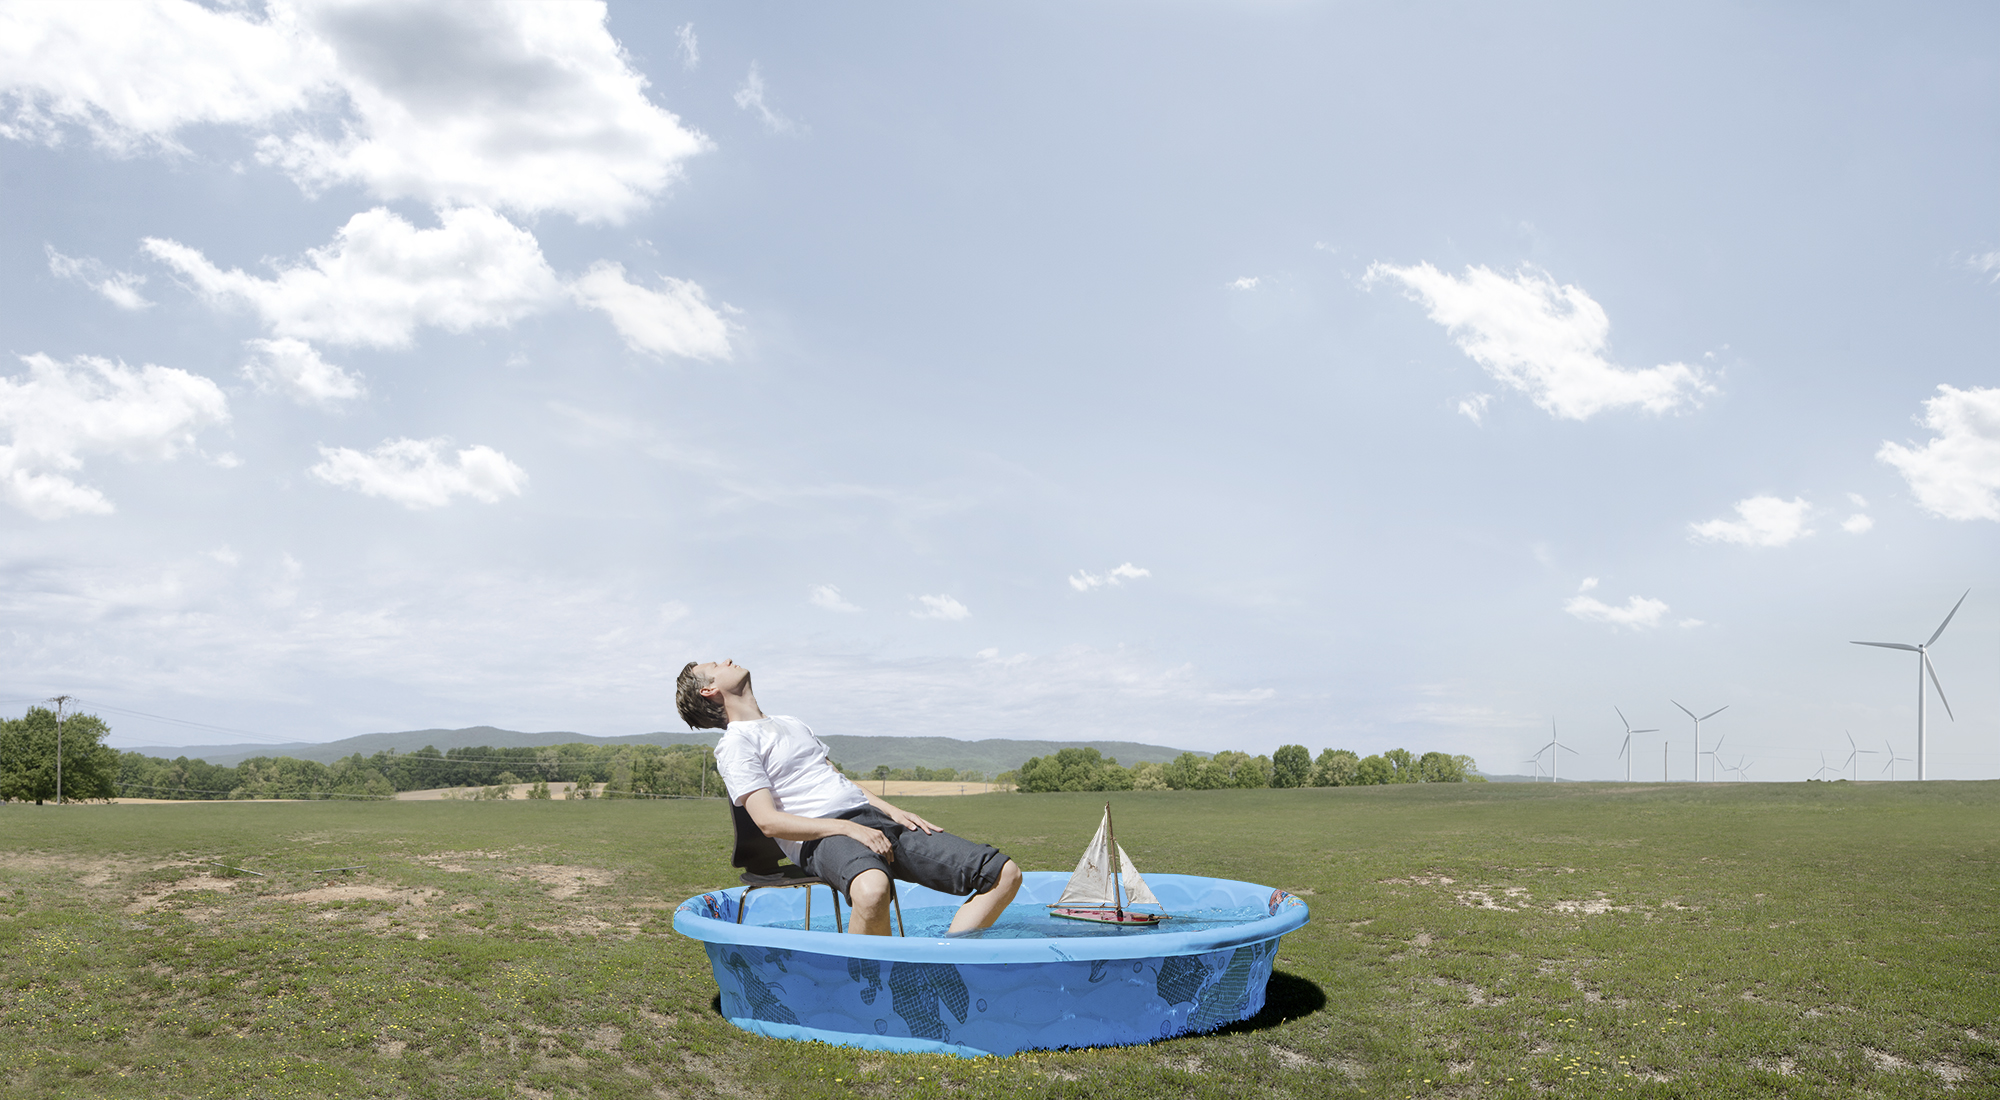 Man sitting in chair with feet in kiddie pool with electric windmills in the background